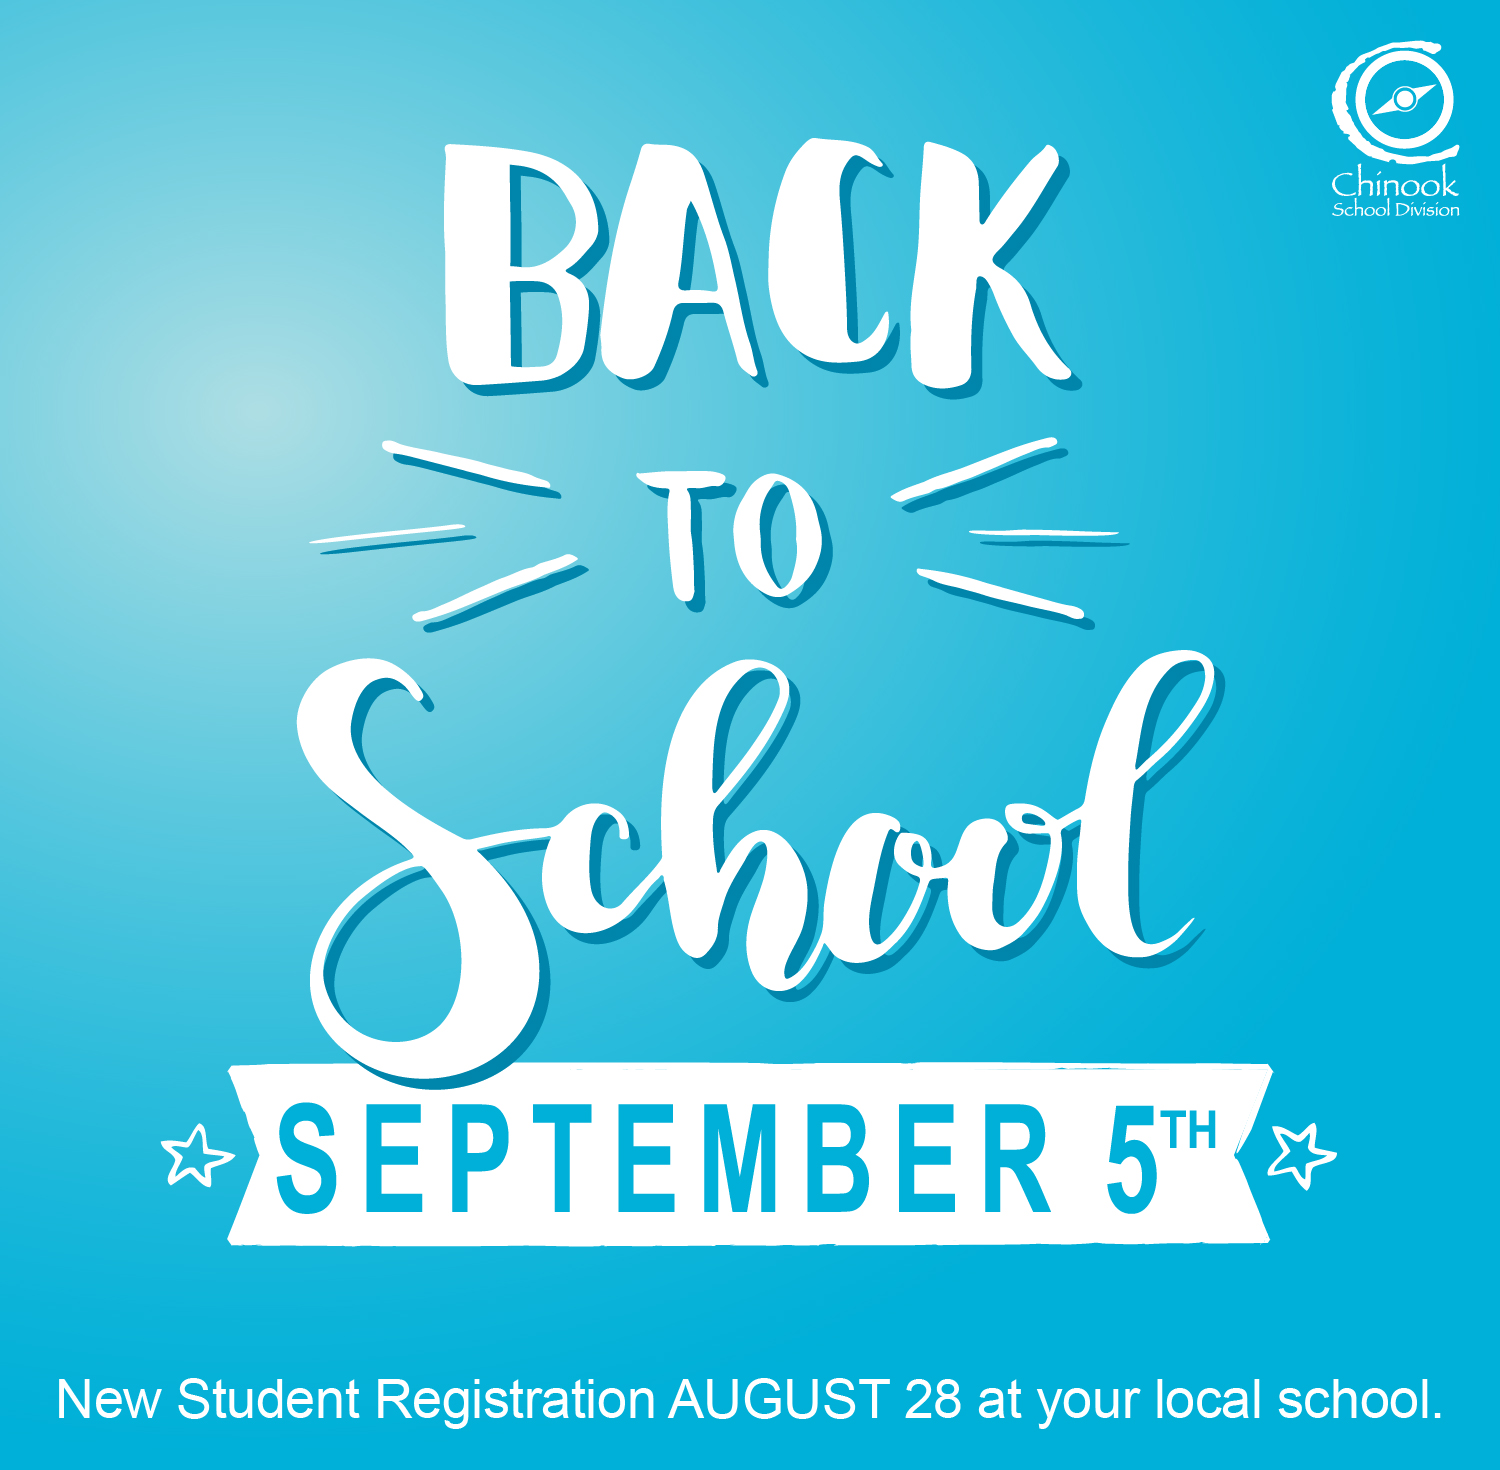 Back to School September 1